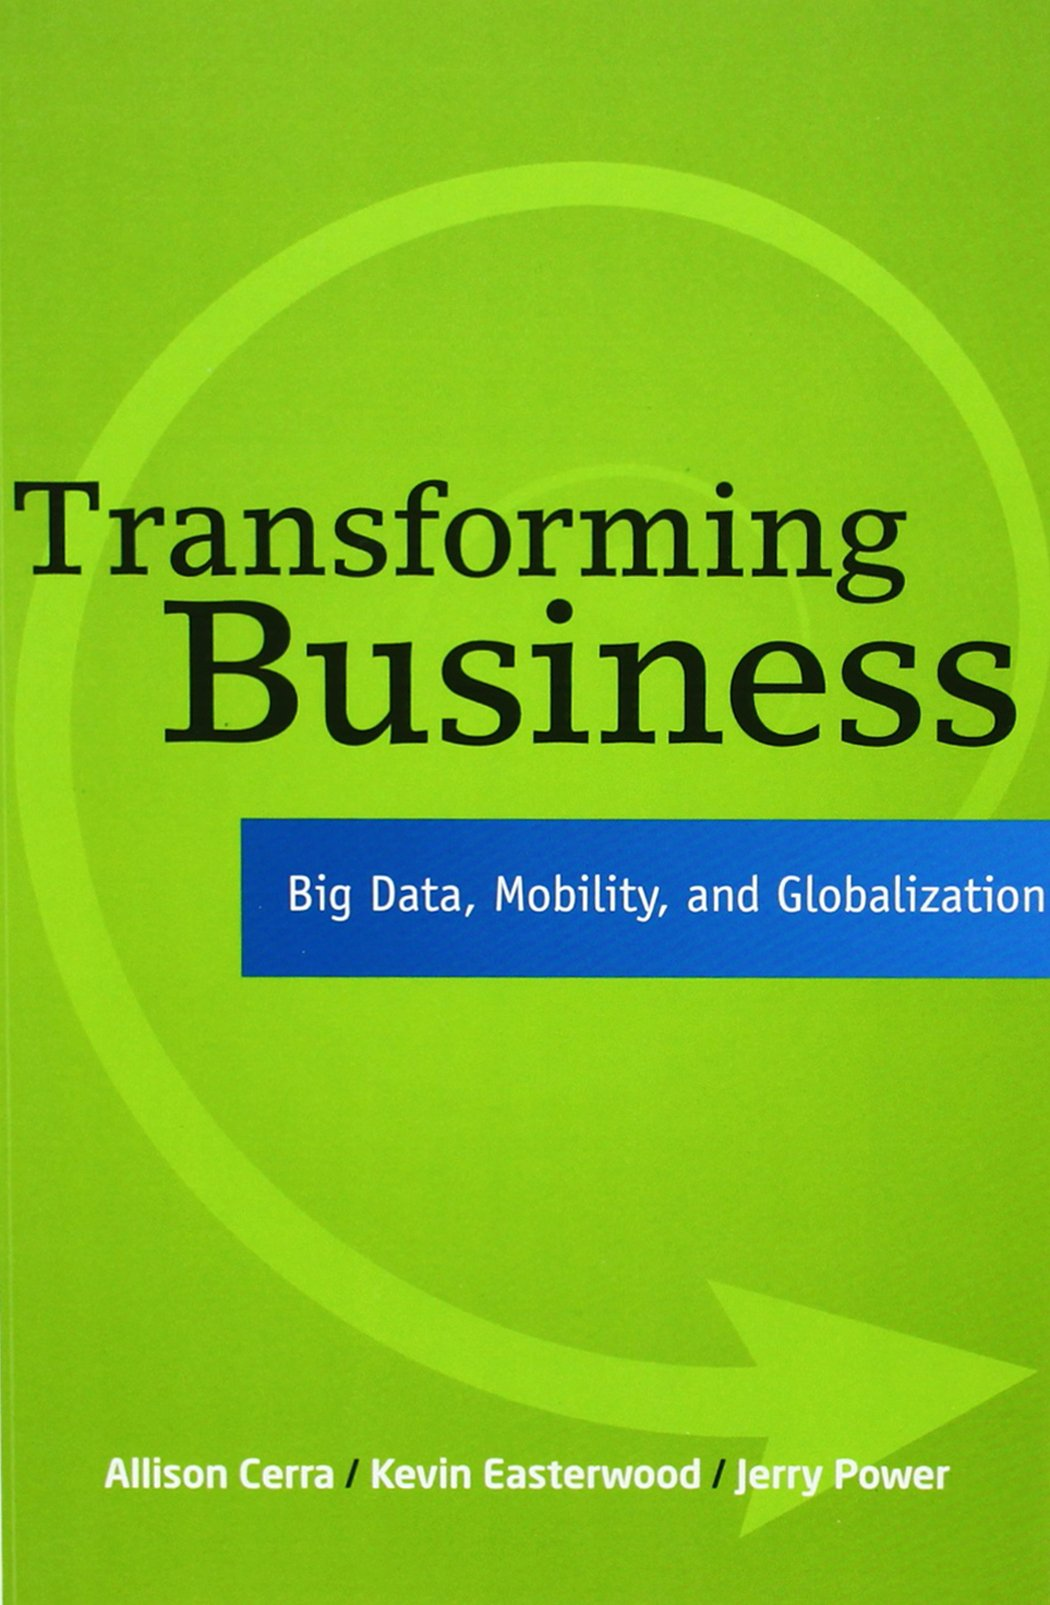 Transforming Business: Big Data, Mobility, and Globalization pdf